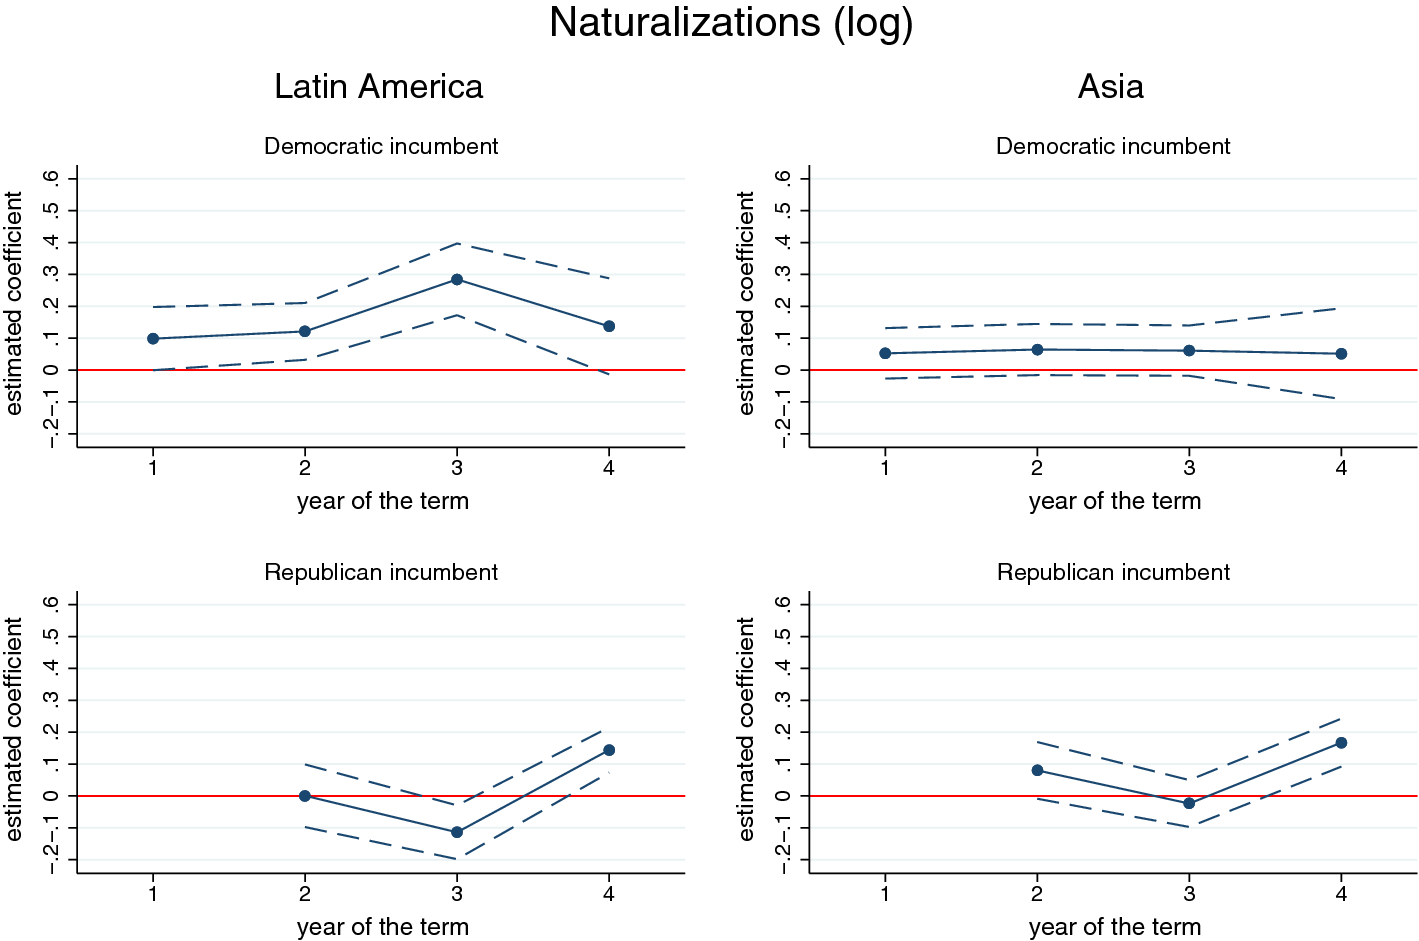 Electoral cycles, partisan effects and US naturalization policies